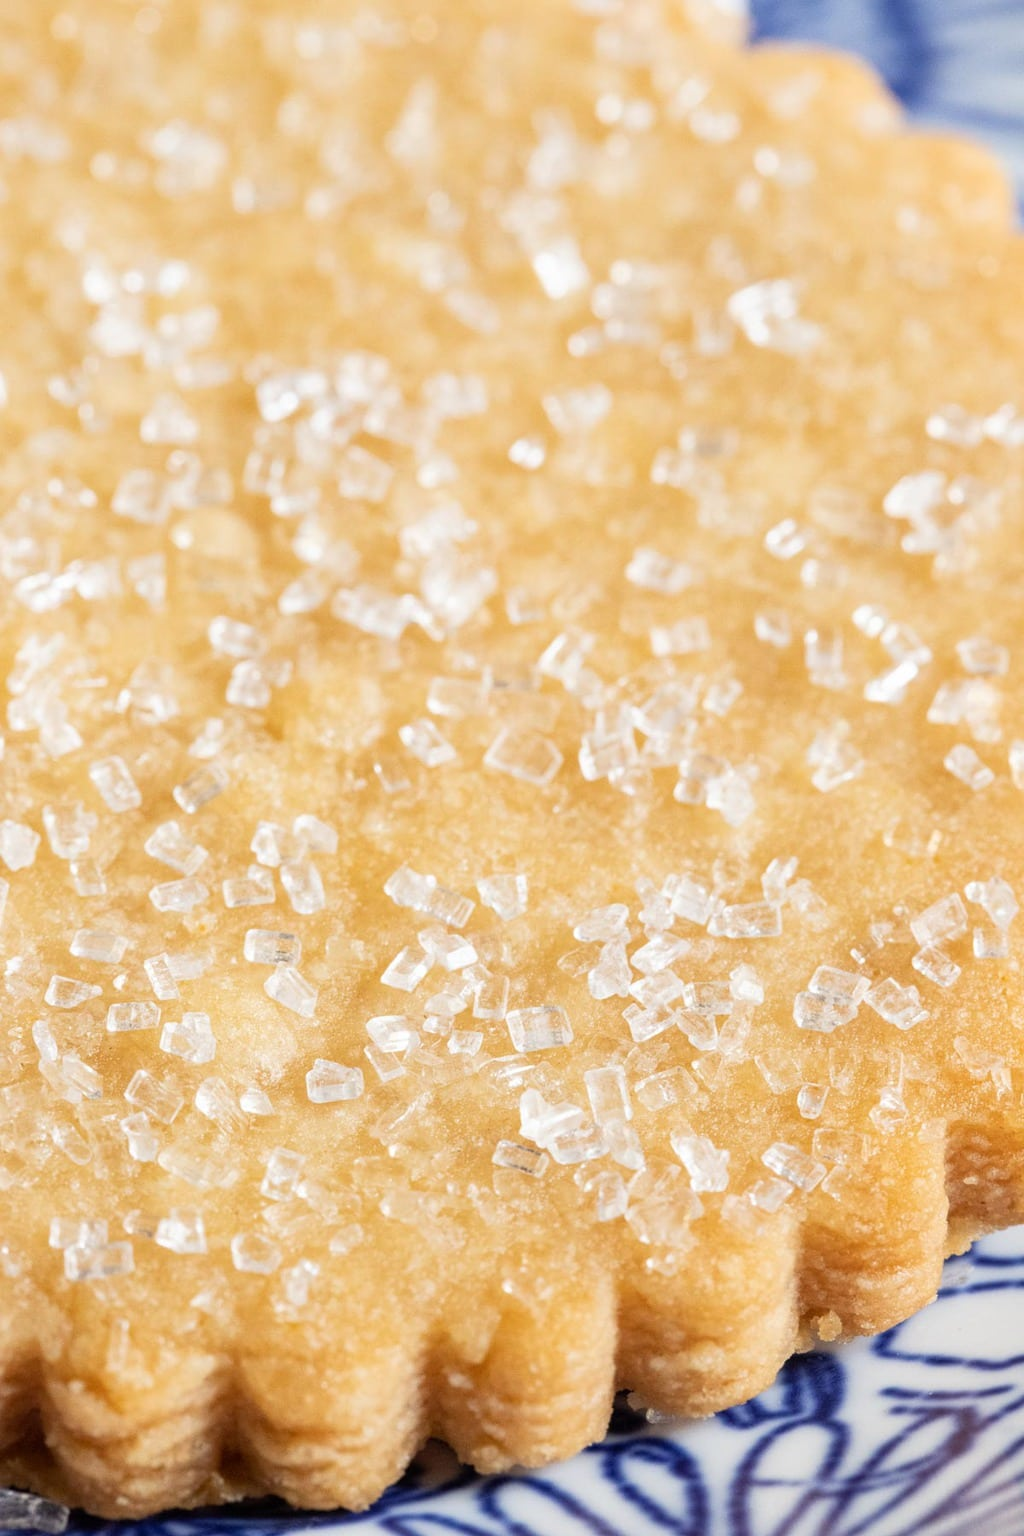 Vertical extreme closeup photo of the sugared top of a Brown Sugar Honey Shortbread Cookies.